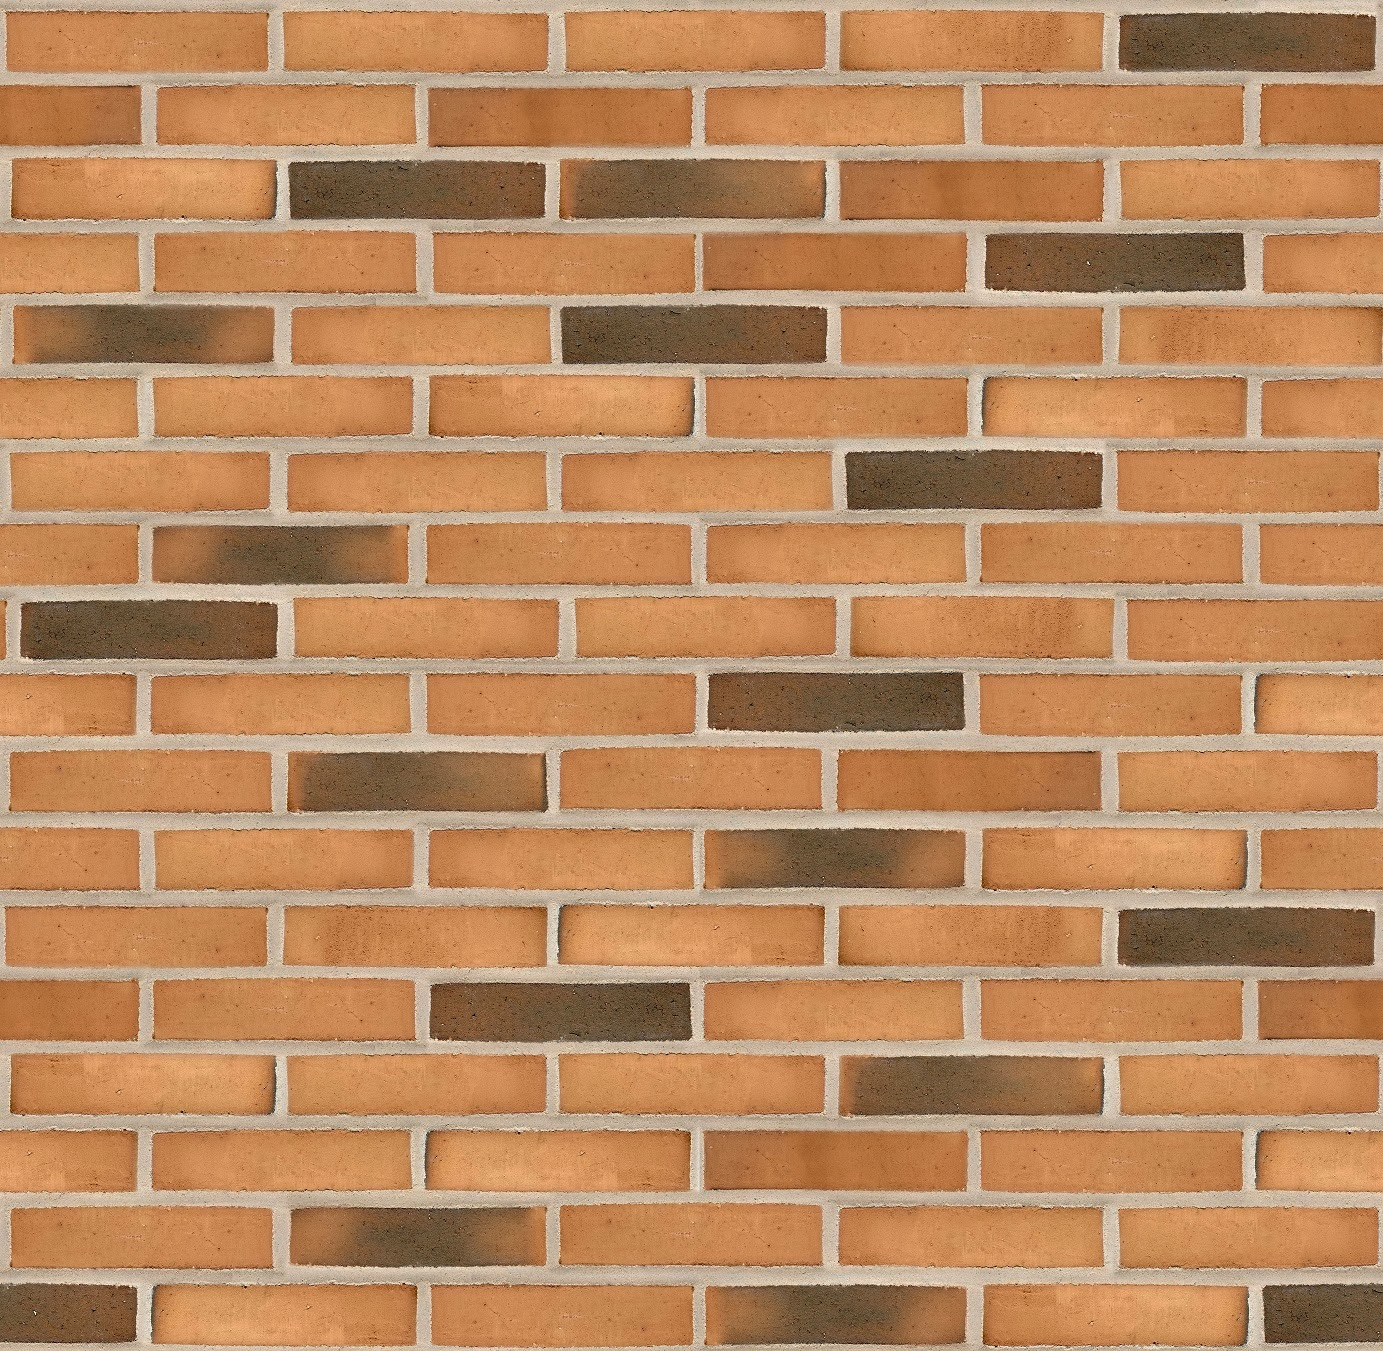 1000+ images about Texture Brick on Pinterest | Texture ...